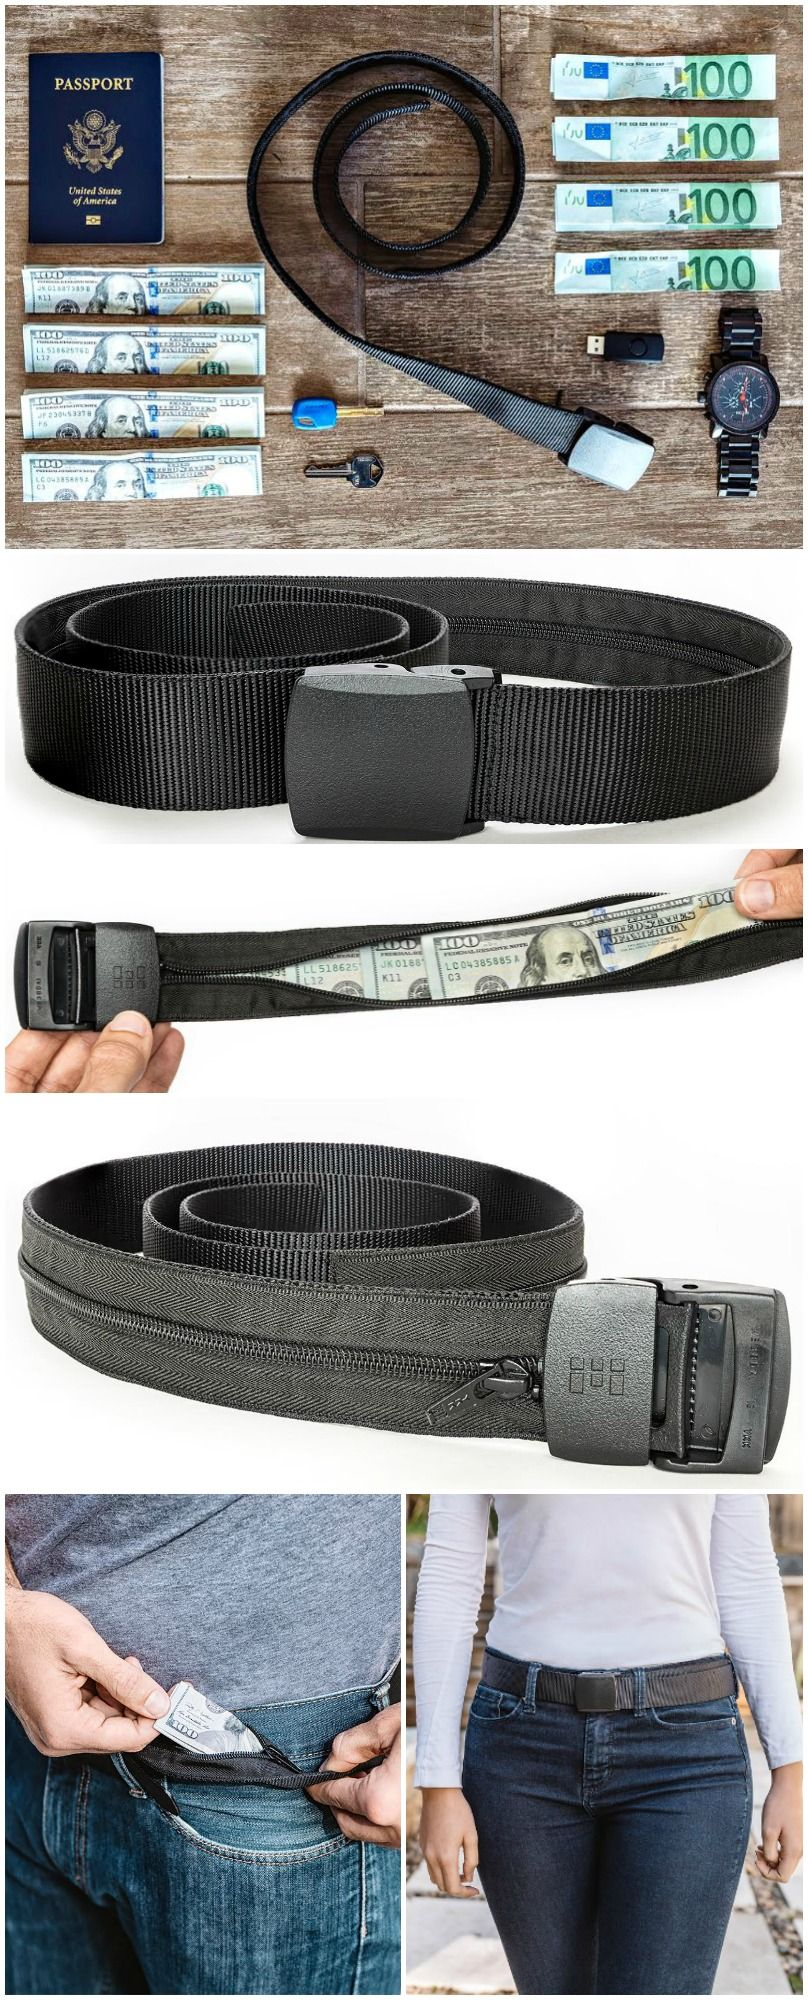 Travel Security Belt Your Insurance Against A Disastrous Holiday Con Imagenes Escondites Cinturones Productos Innovadores